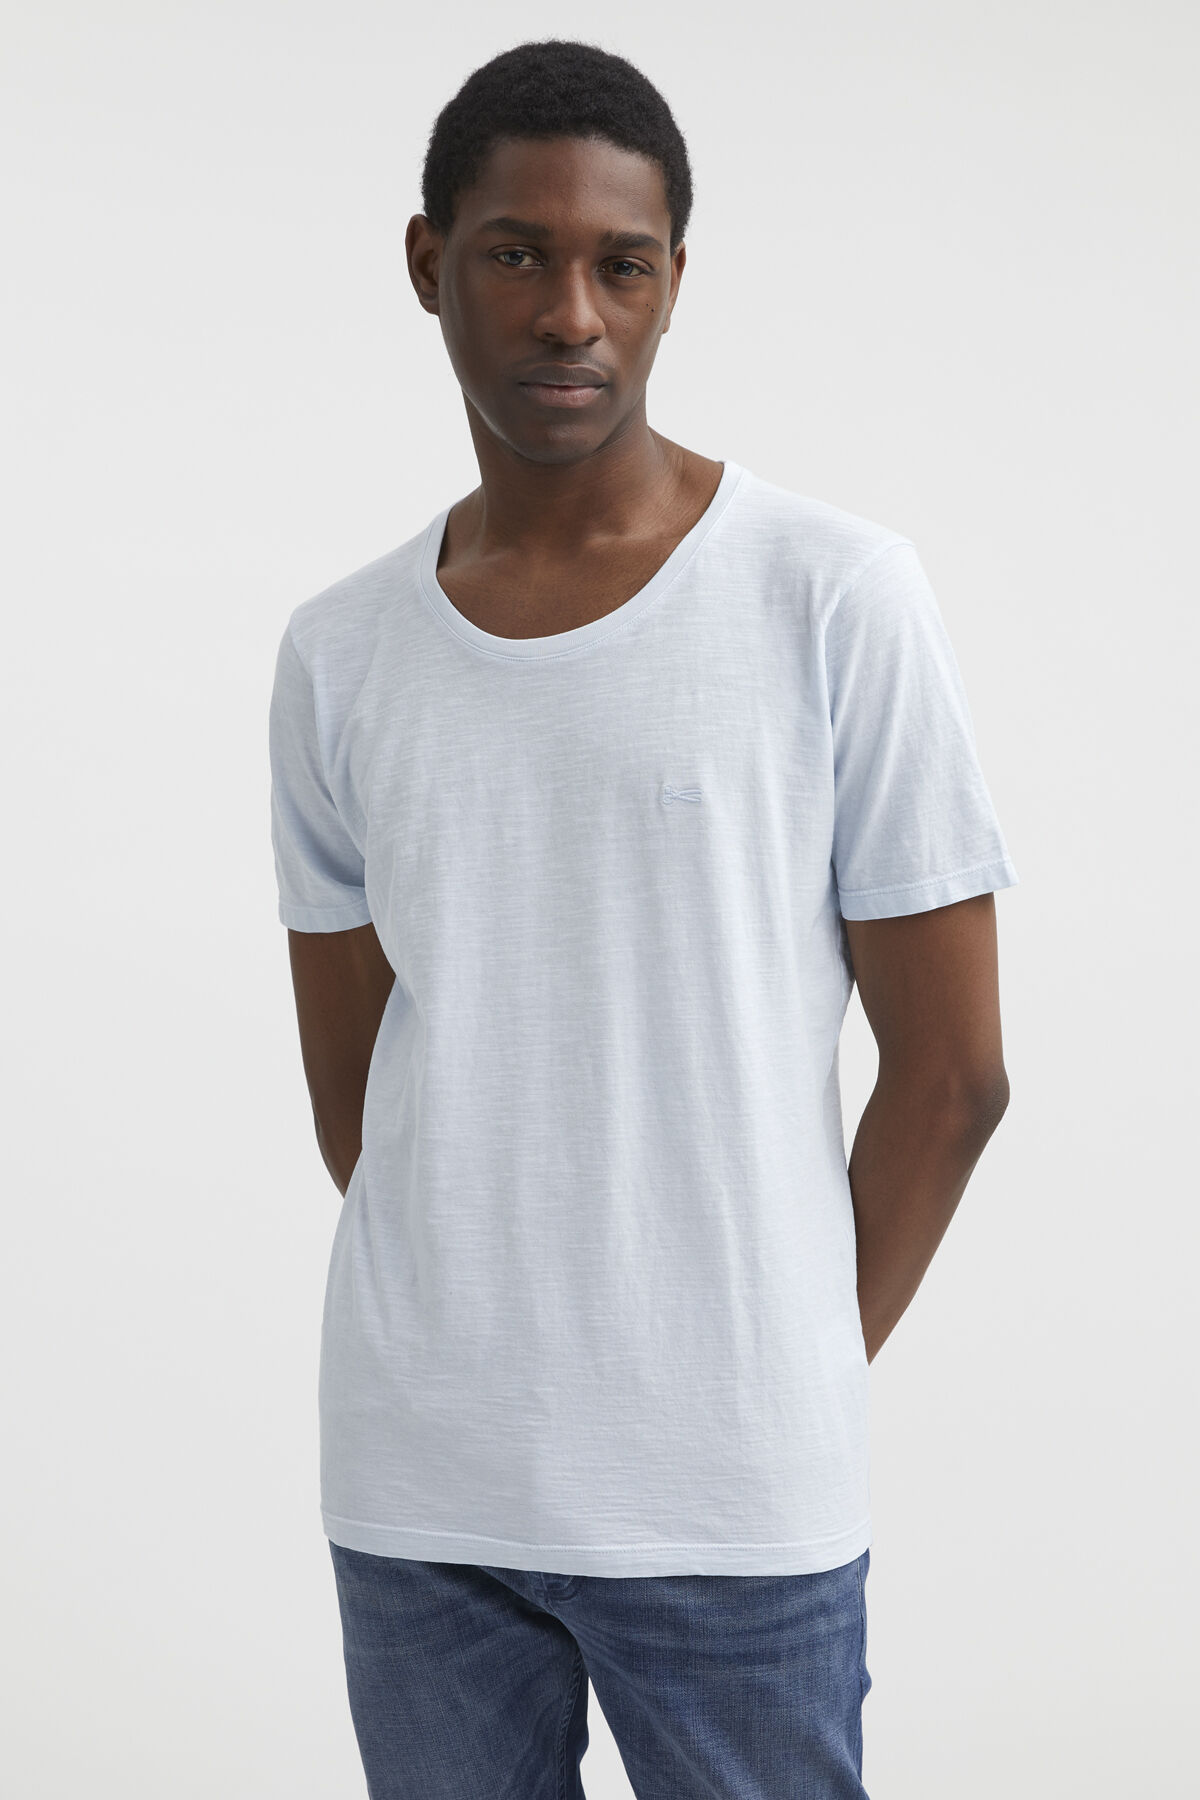 INGO TEE Soft touch Cotton - Slim Fit